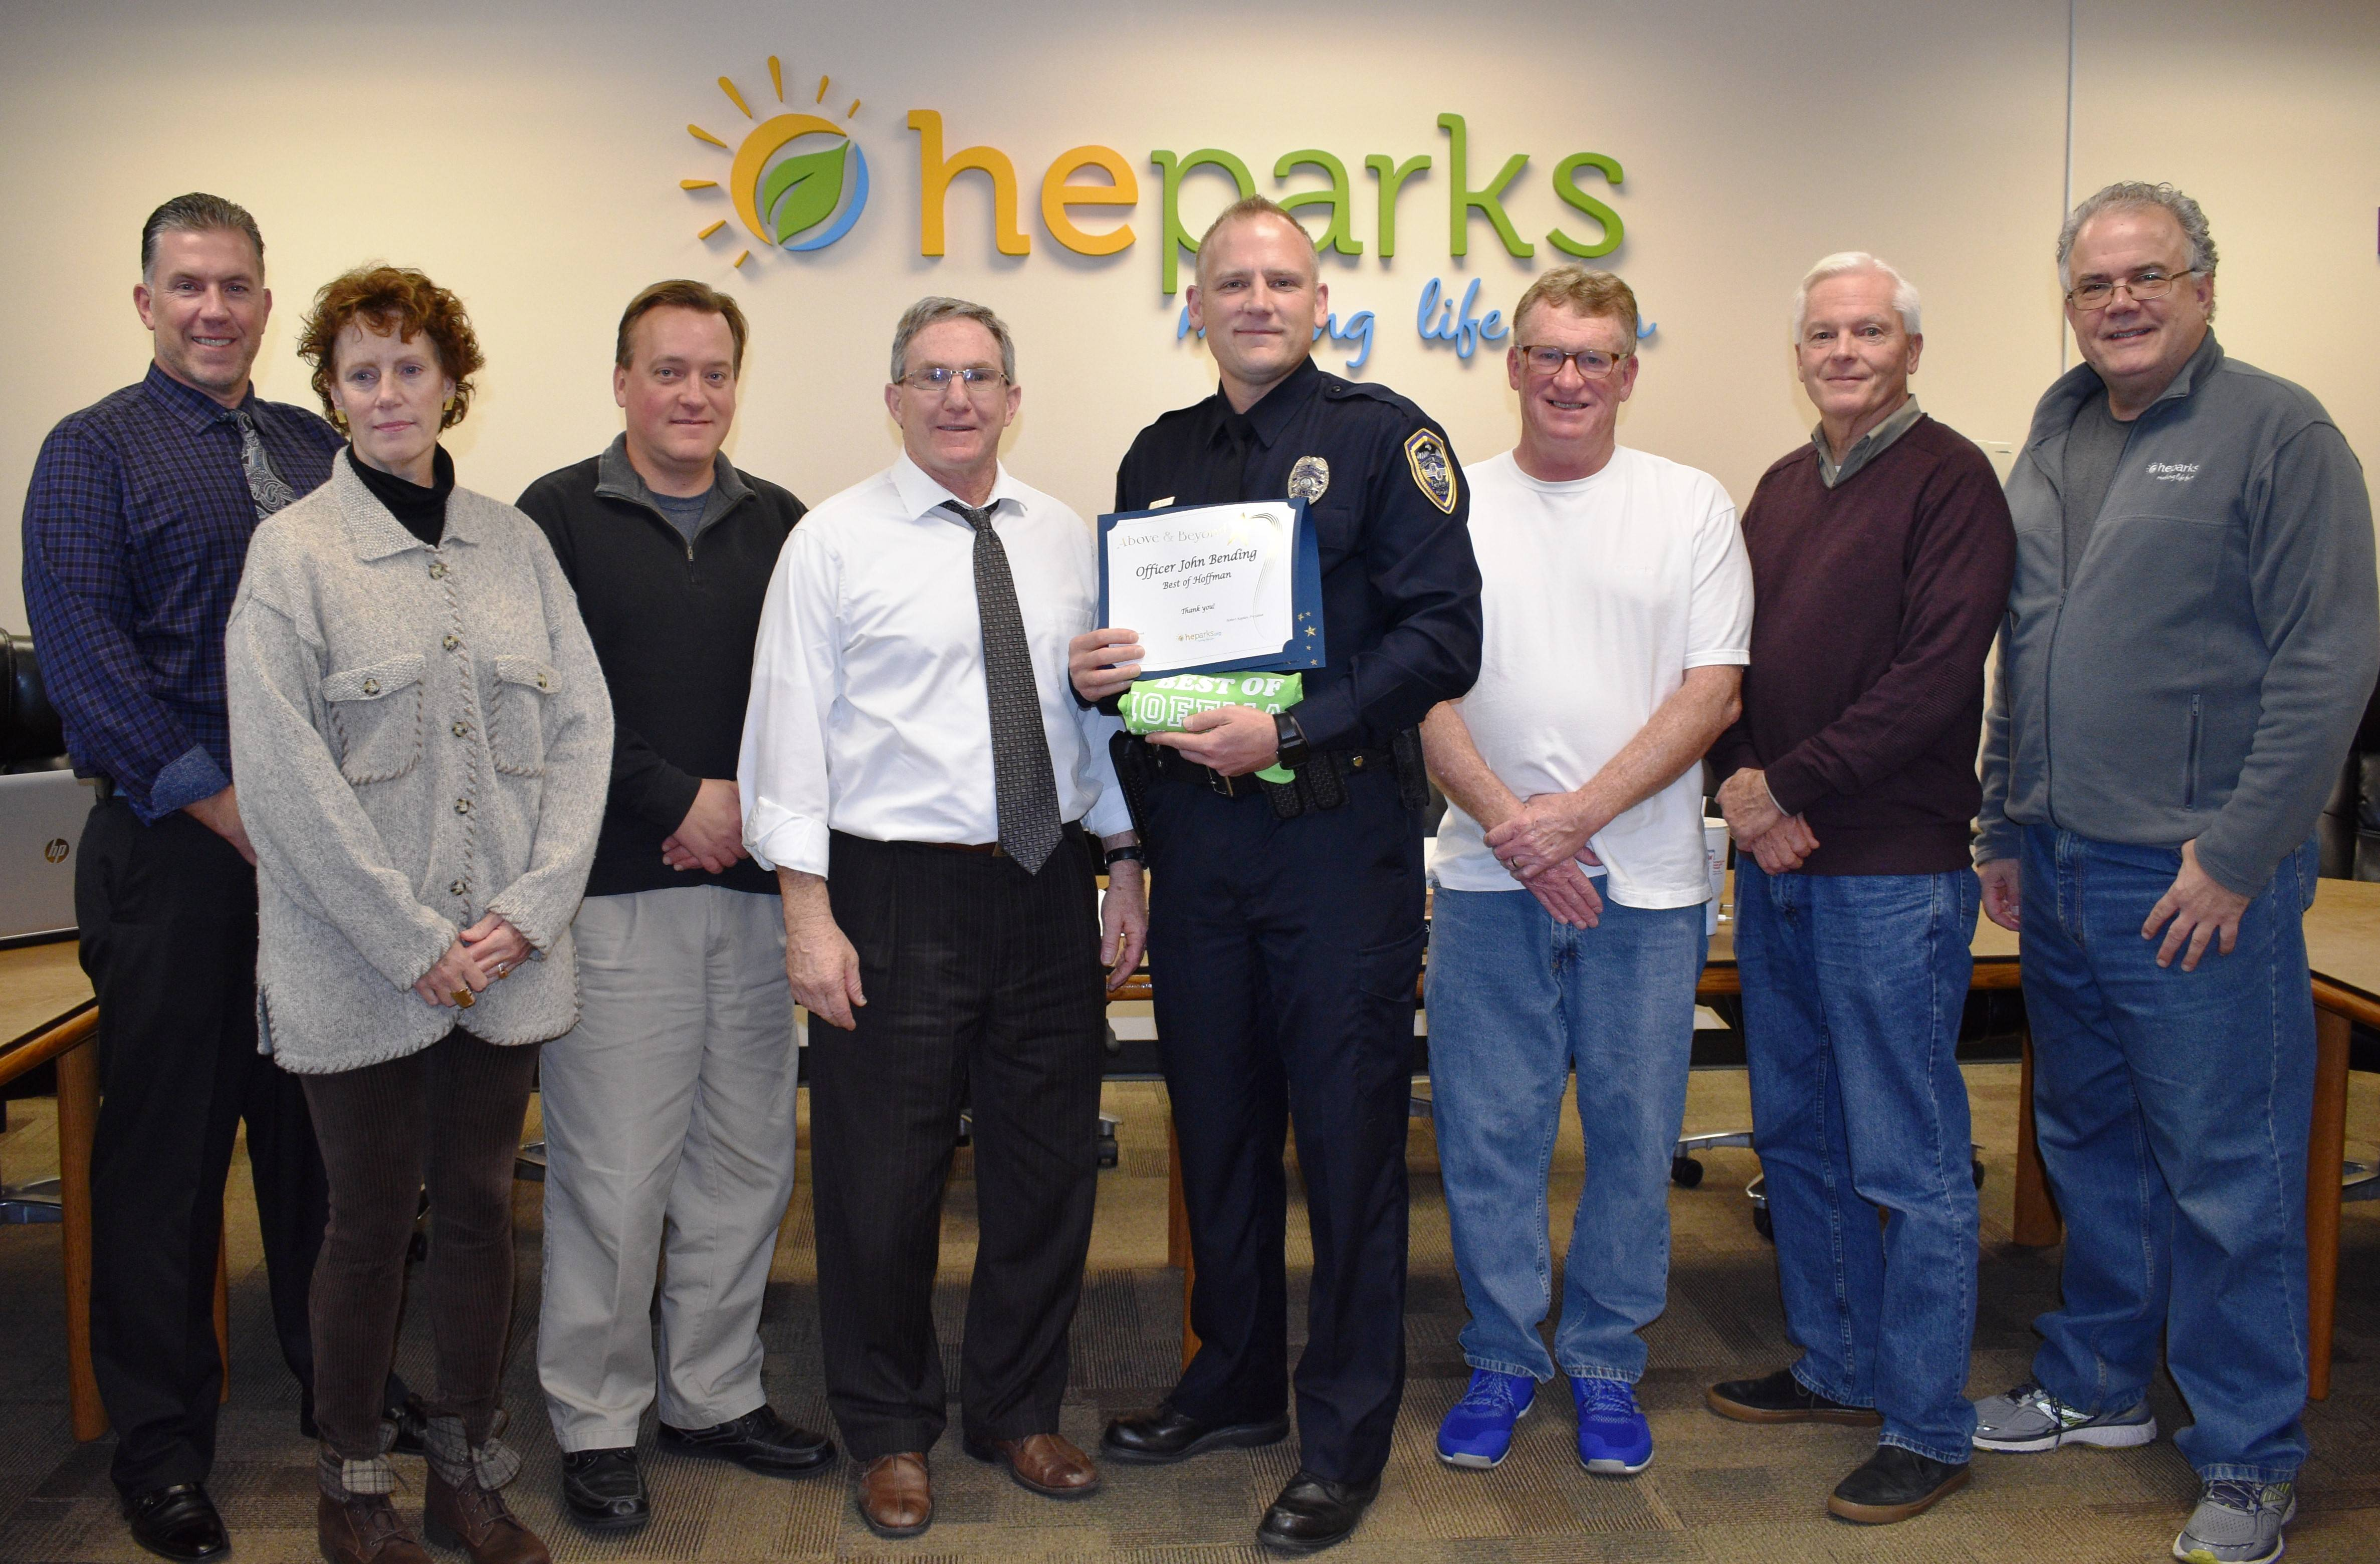 The Hoffman Estates Park Board of Commissioners with its Best of Hoffman Award recipient for October Officer John Bending of the Hoffman Estates Police Department.